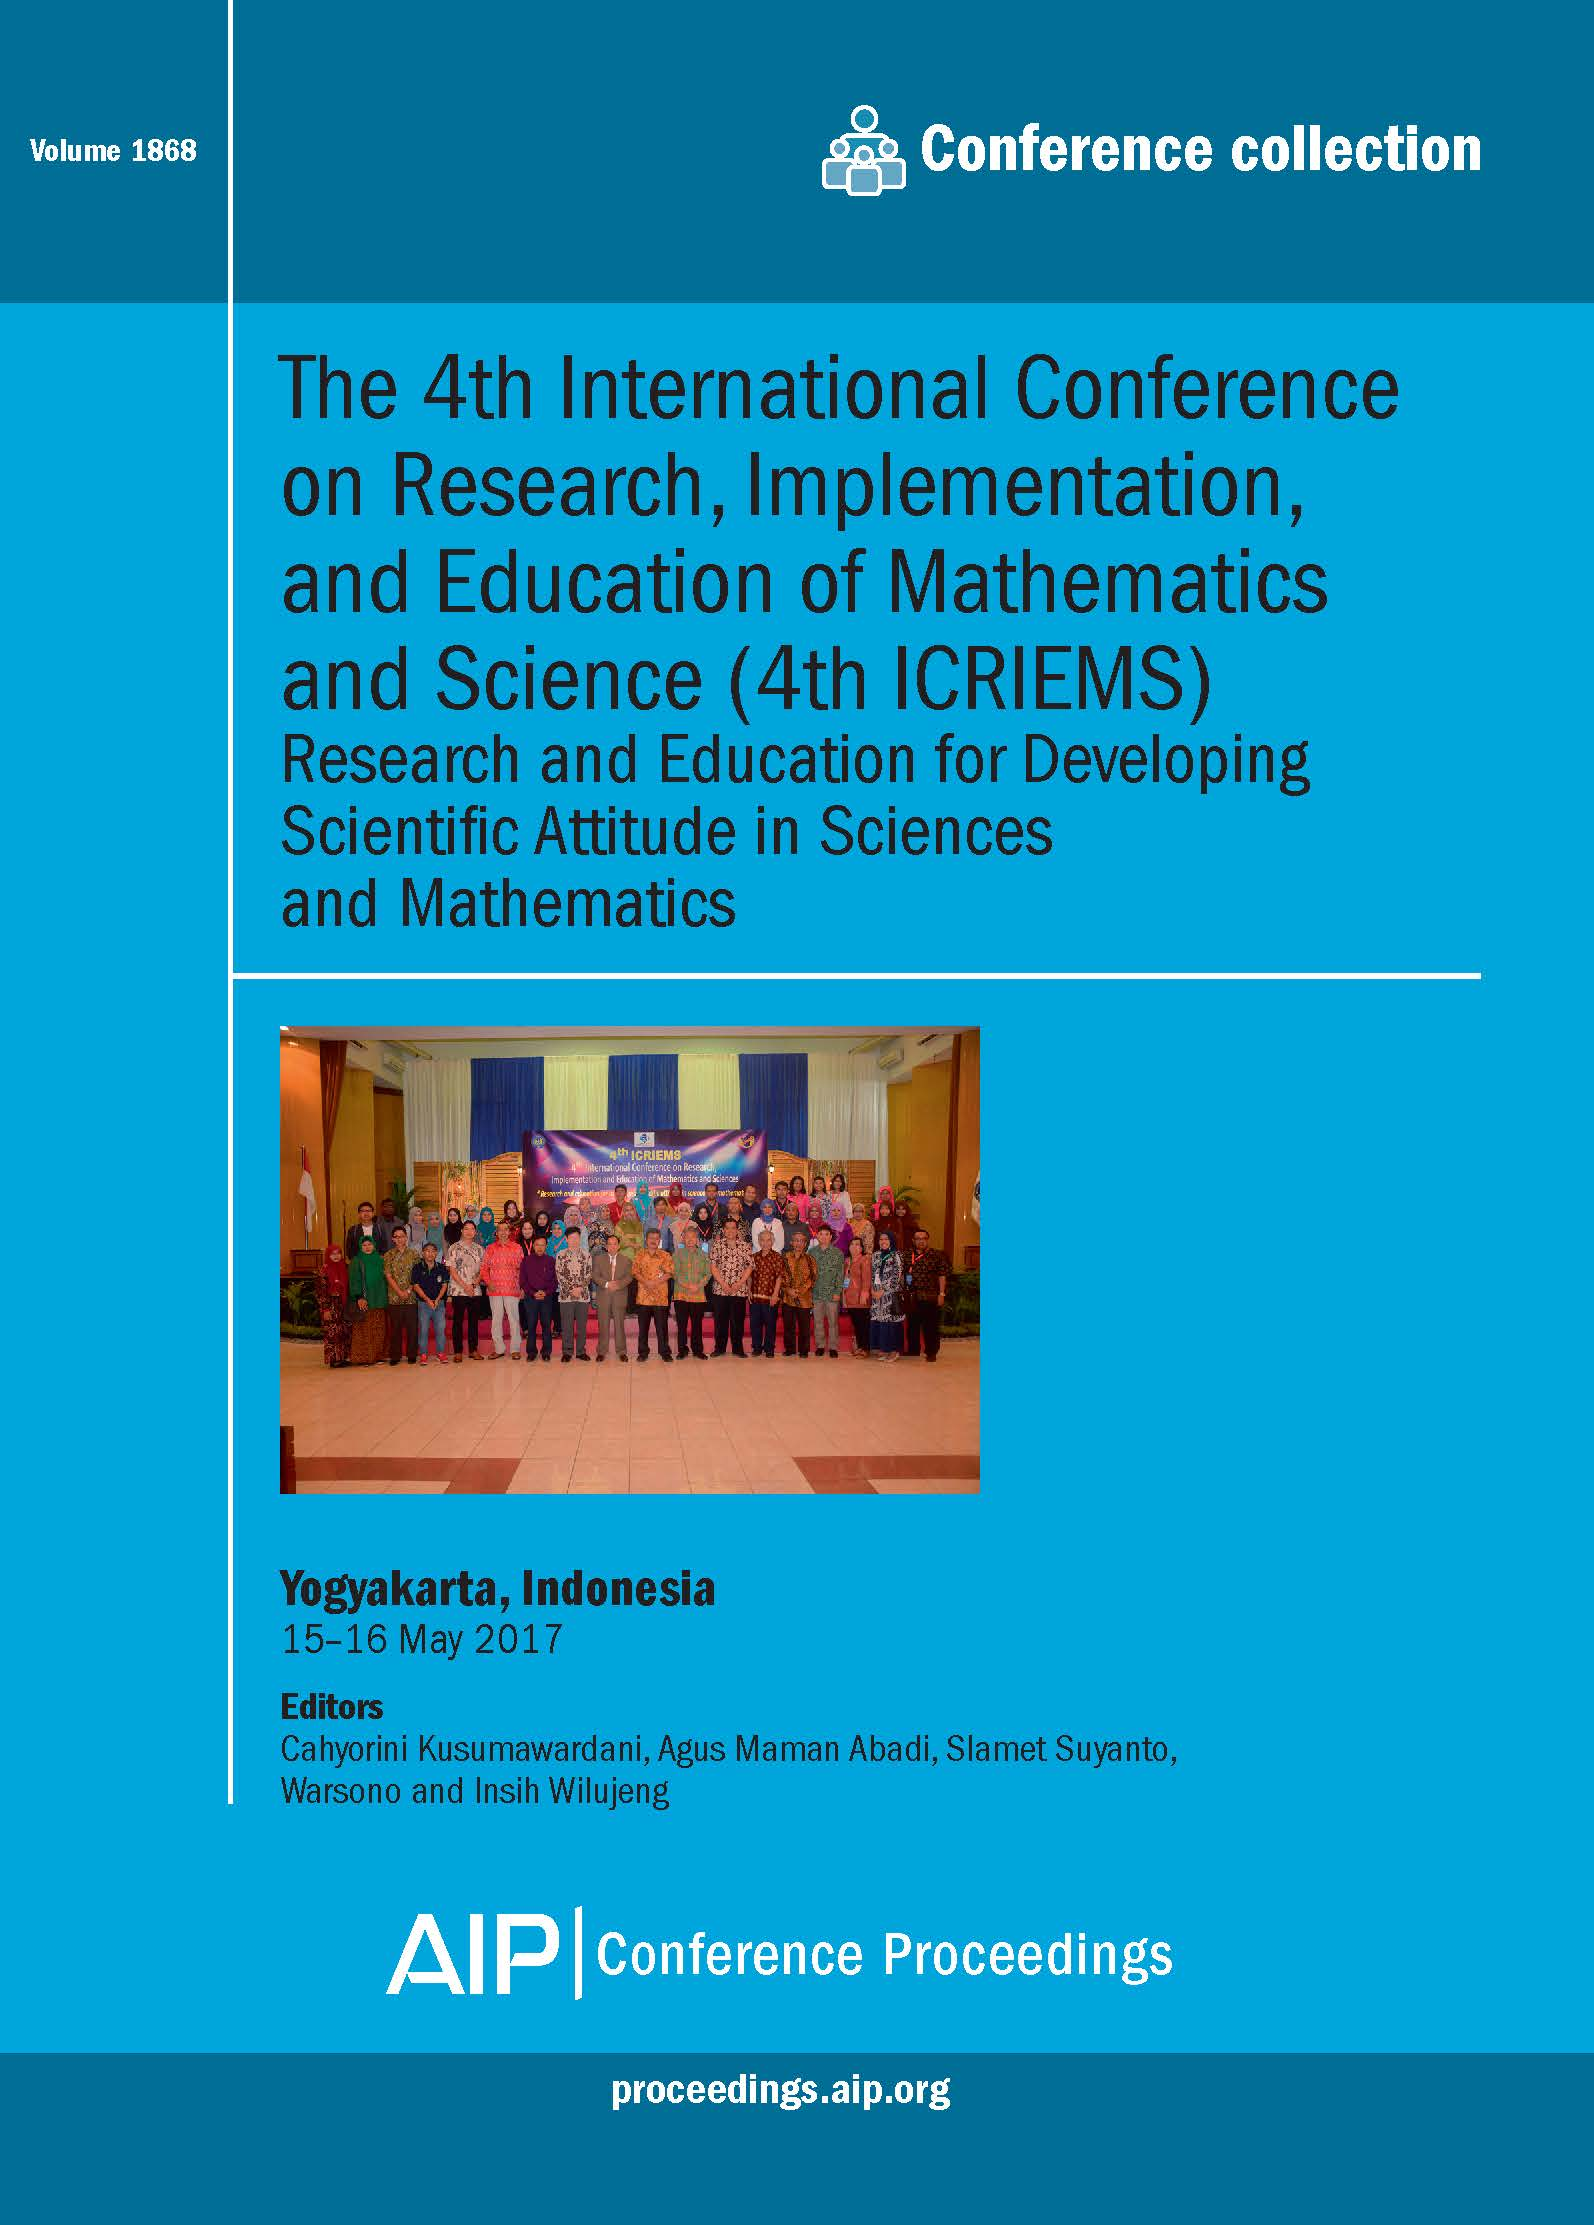 Volume 1868: The 4th International Conference on Research